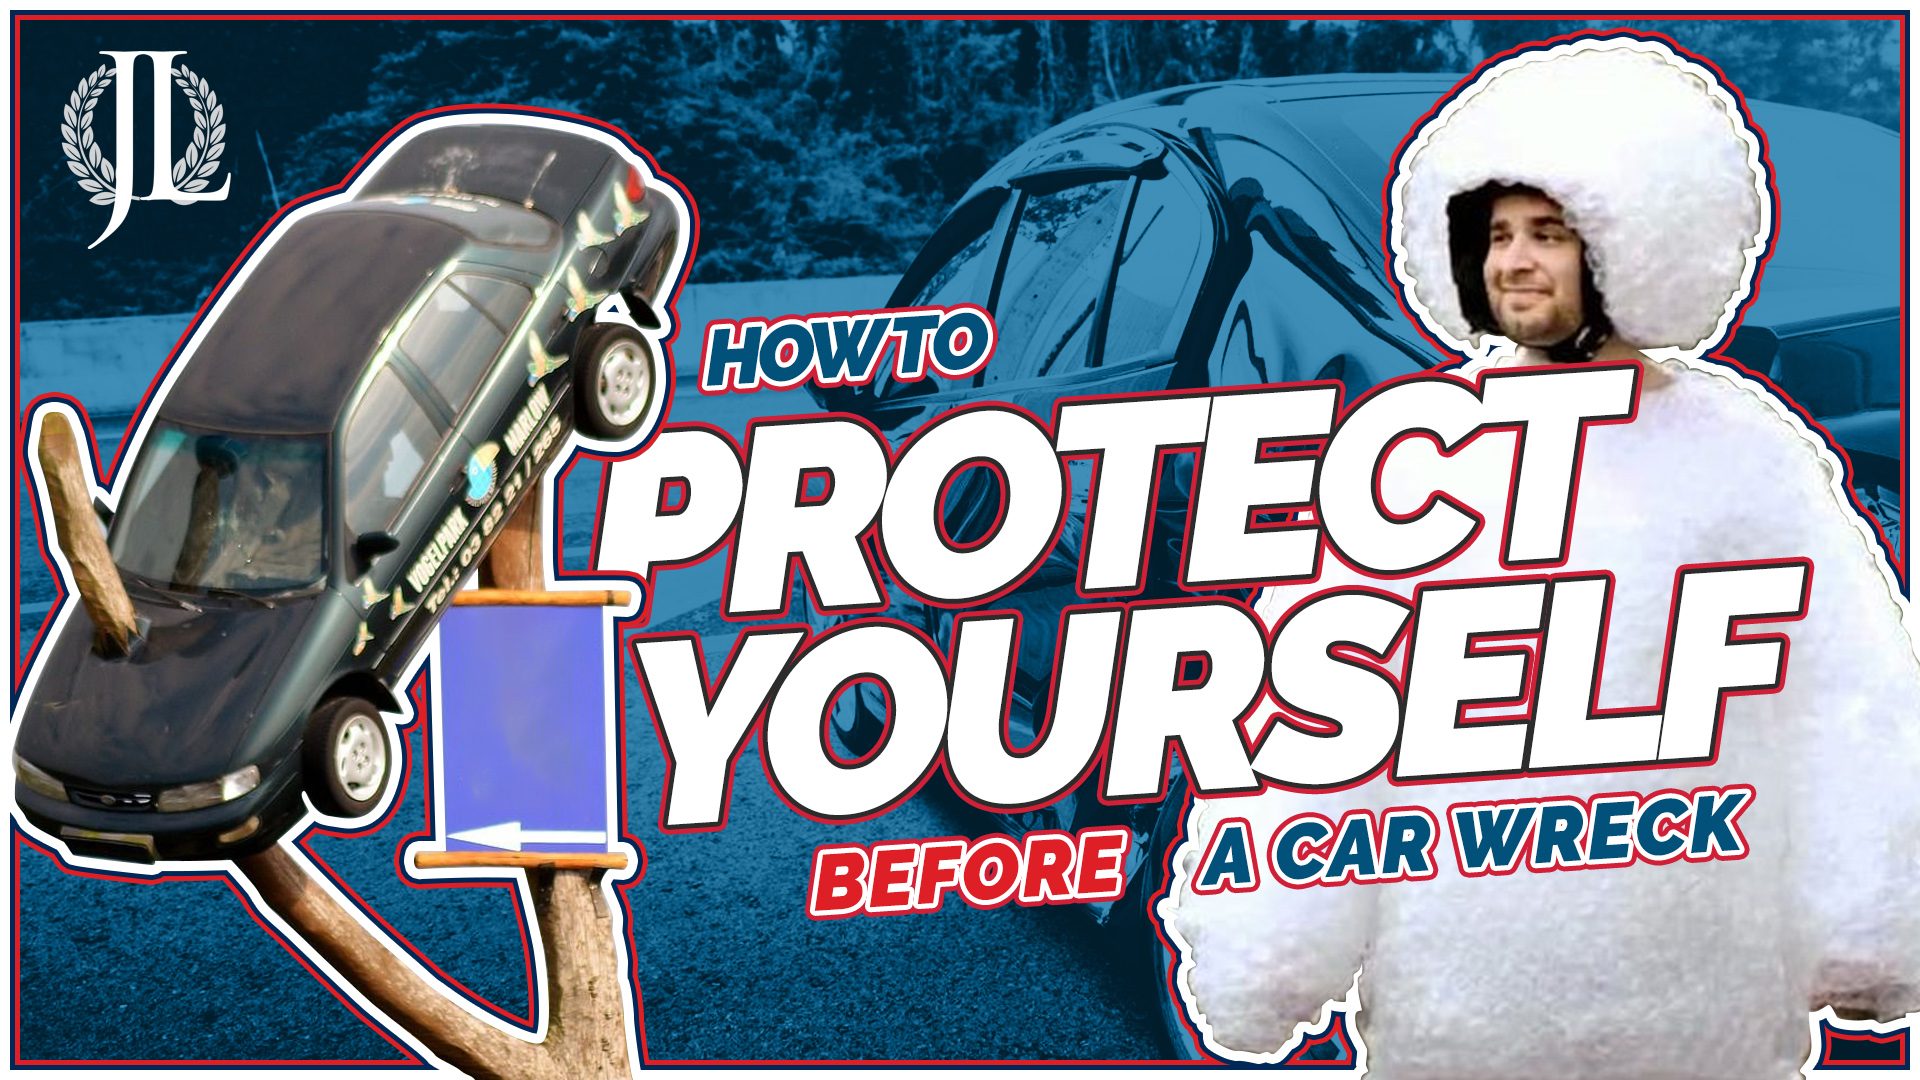 How to protect yourself before a car wreck